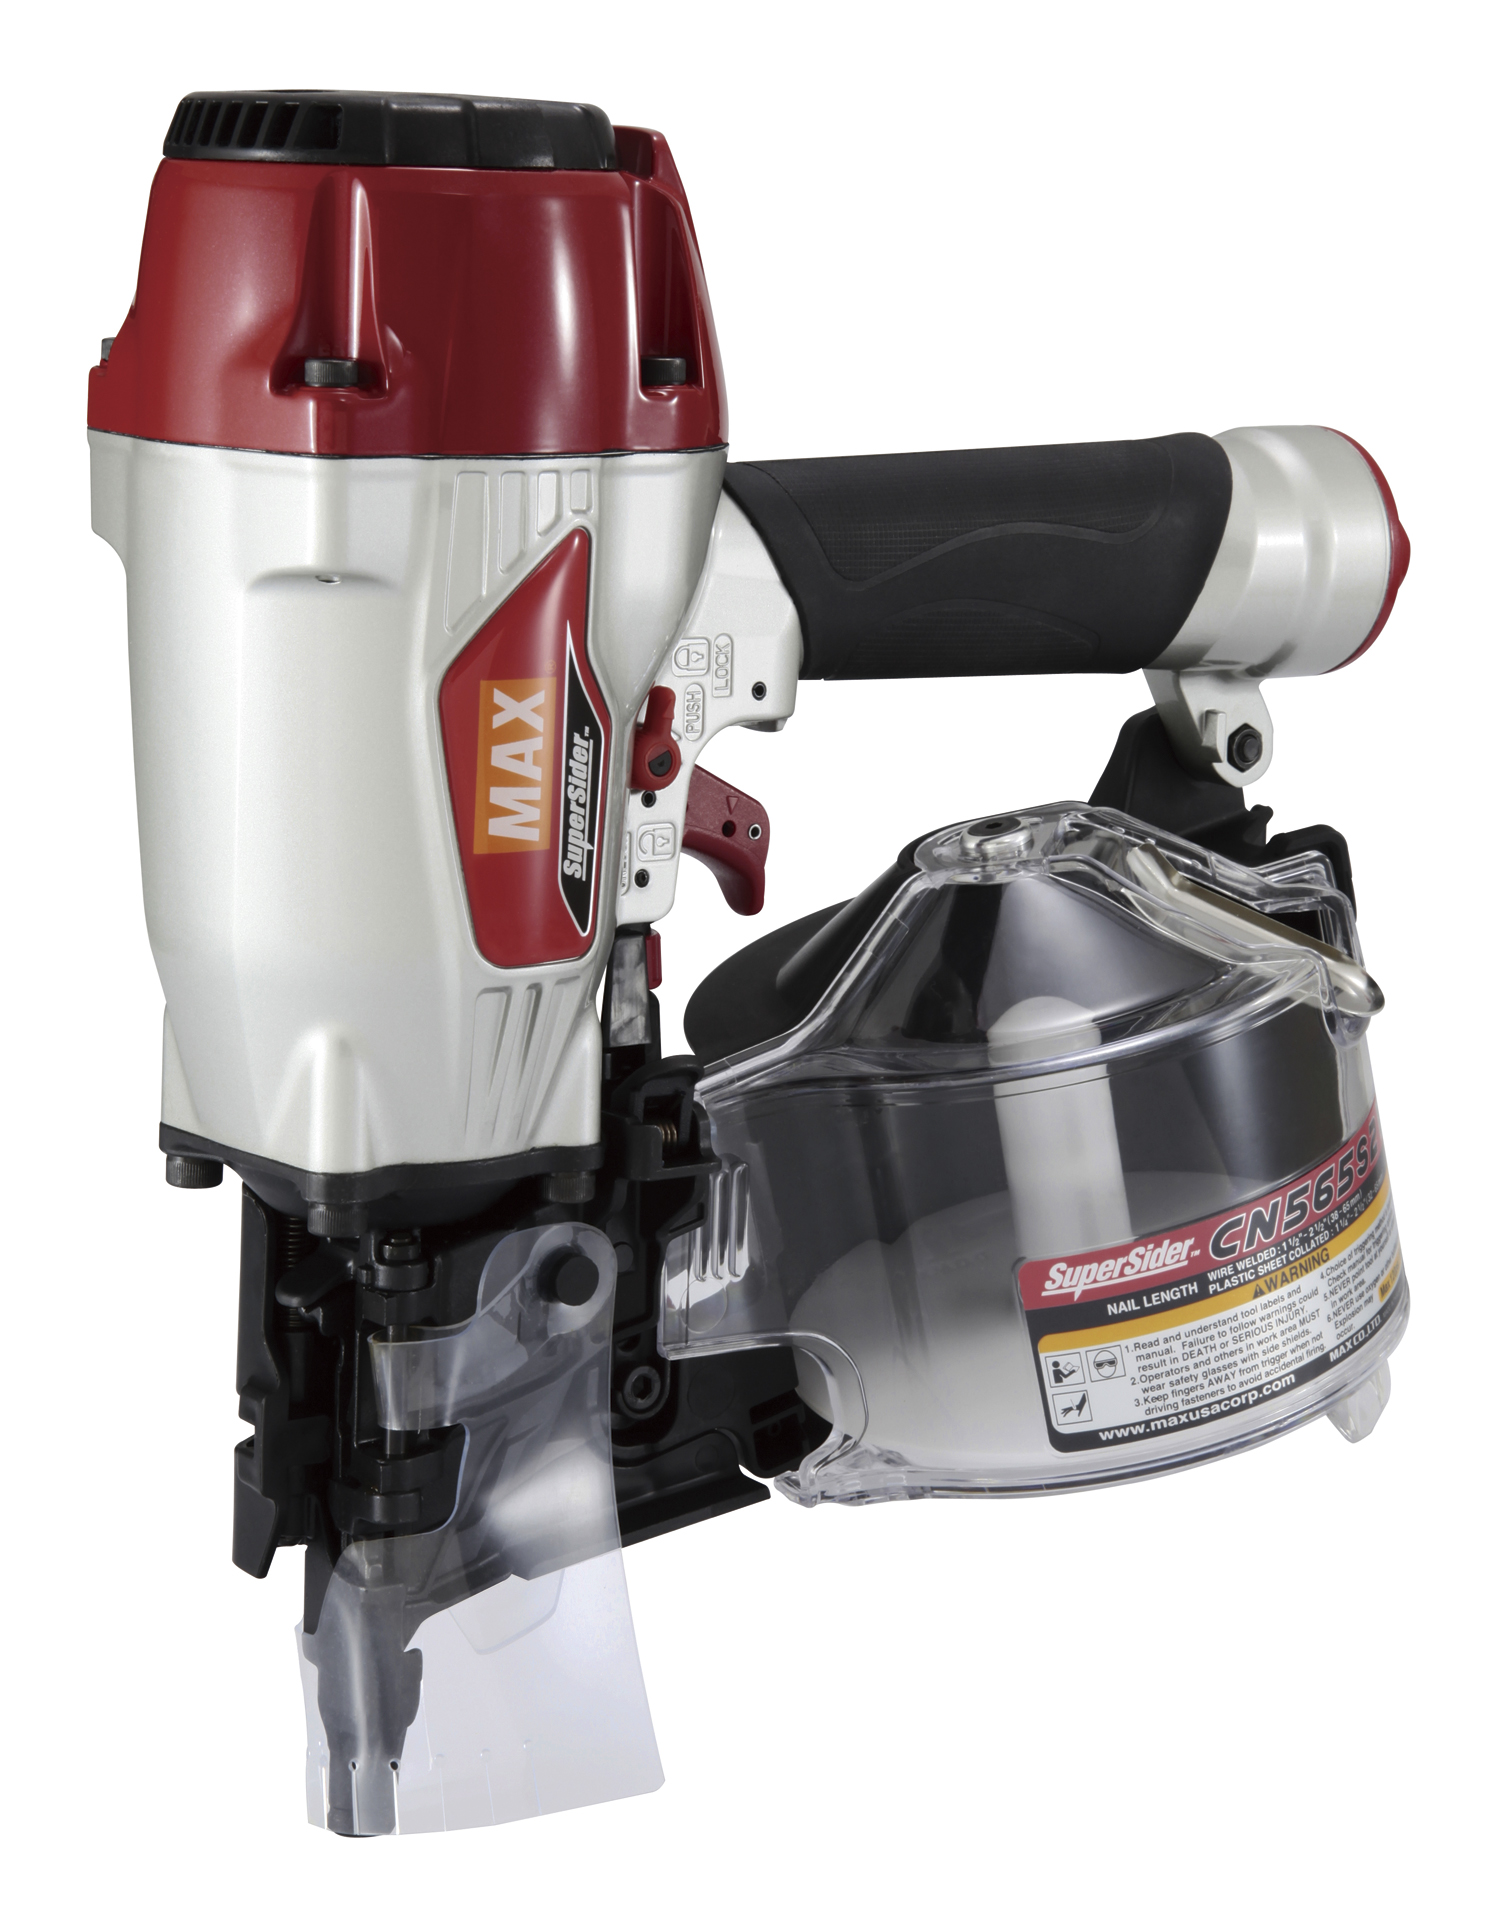 CN565S2 - MAX USA CORP  - The world's professional tool manufacturer